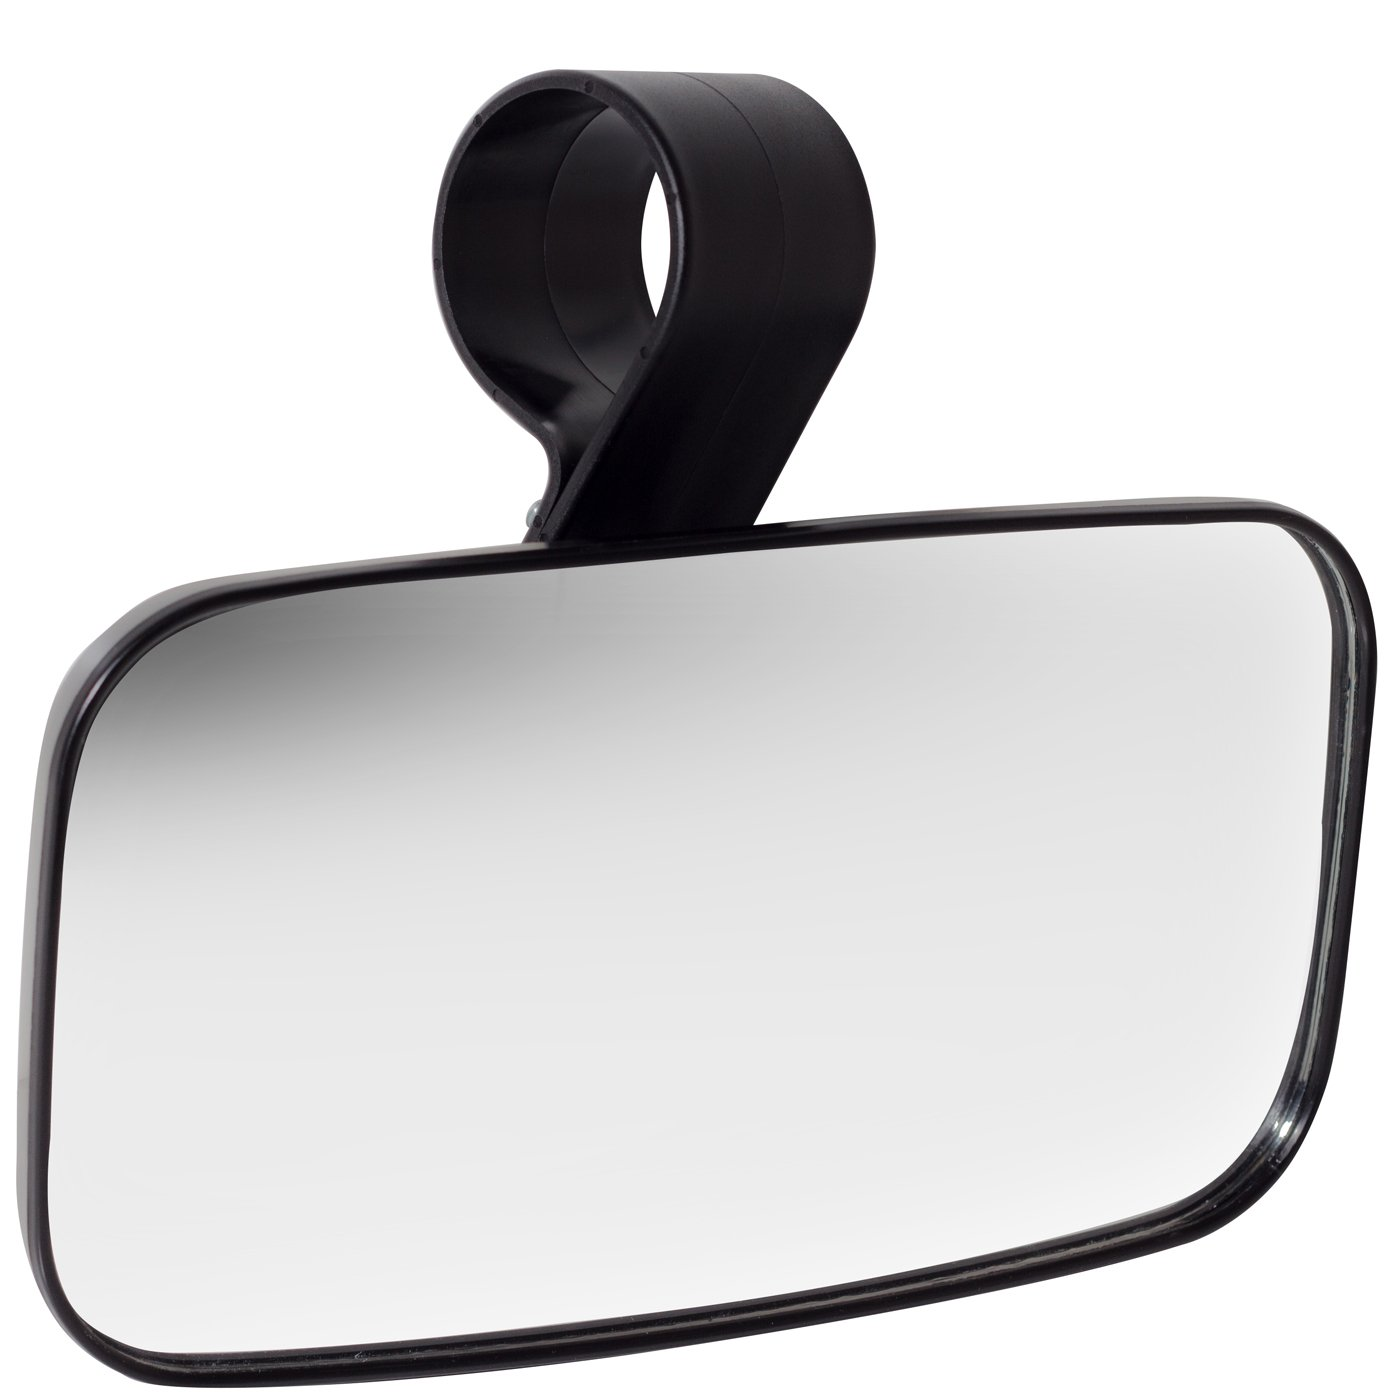 Rear View Mirror UTV Accessories - Mirrors Best for Wide Angle Center or Side-by-Side Off Road Clear-View - High Impact ABS Housing & Universal Roll Cage Bar Mounts with Shatter-Proof Tempered Glass by OxGord